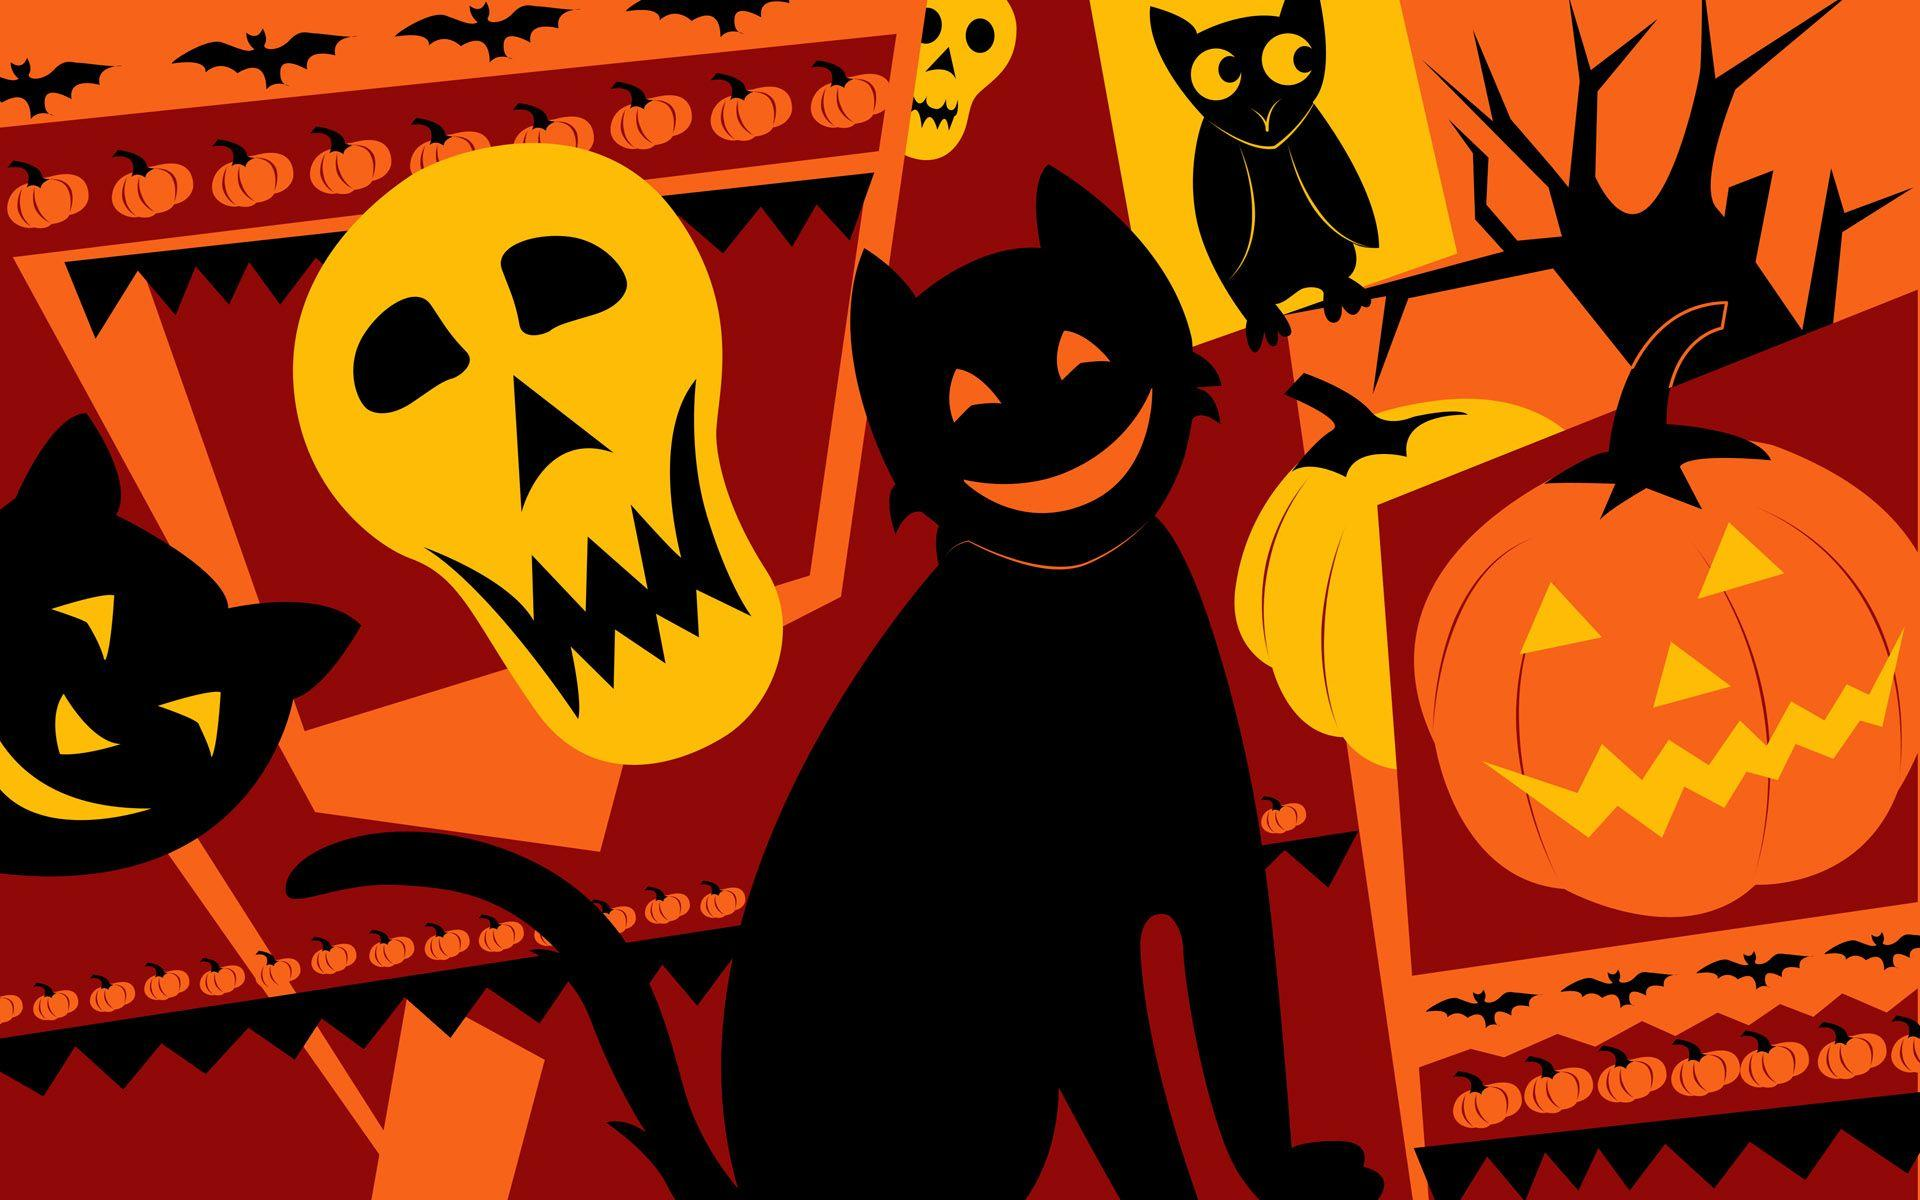 HALLOWEEN | Halloween Wallpaper 21 | HOLIDAYS | Pinterest ...